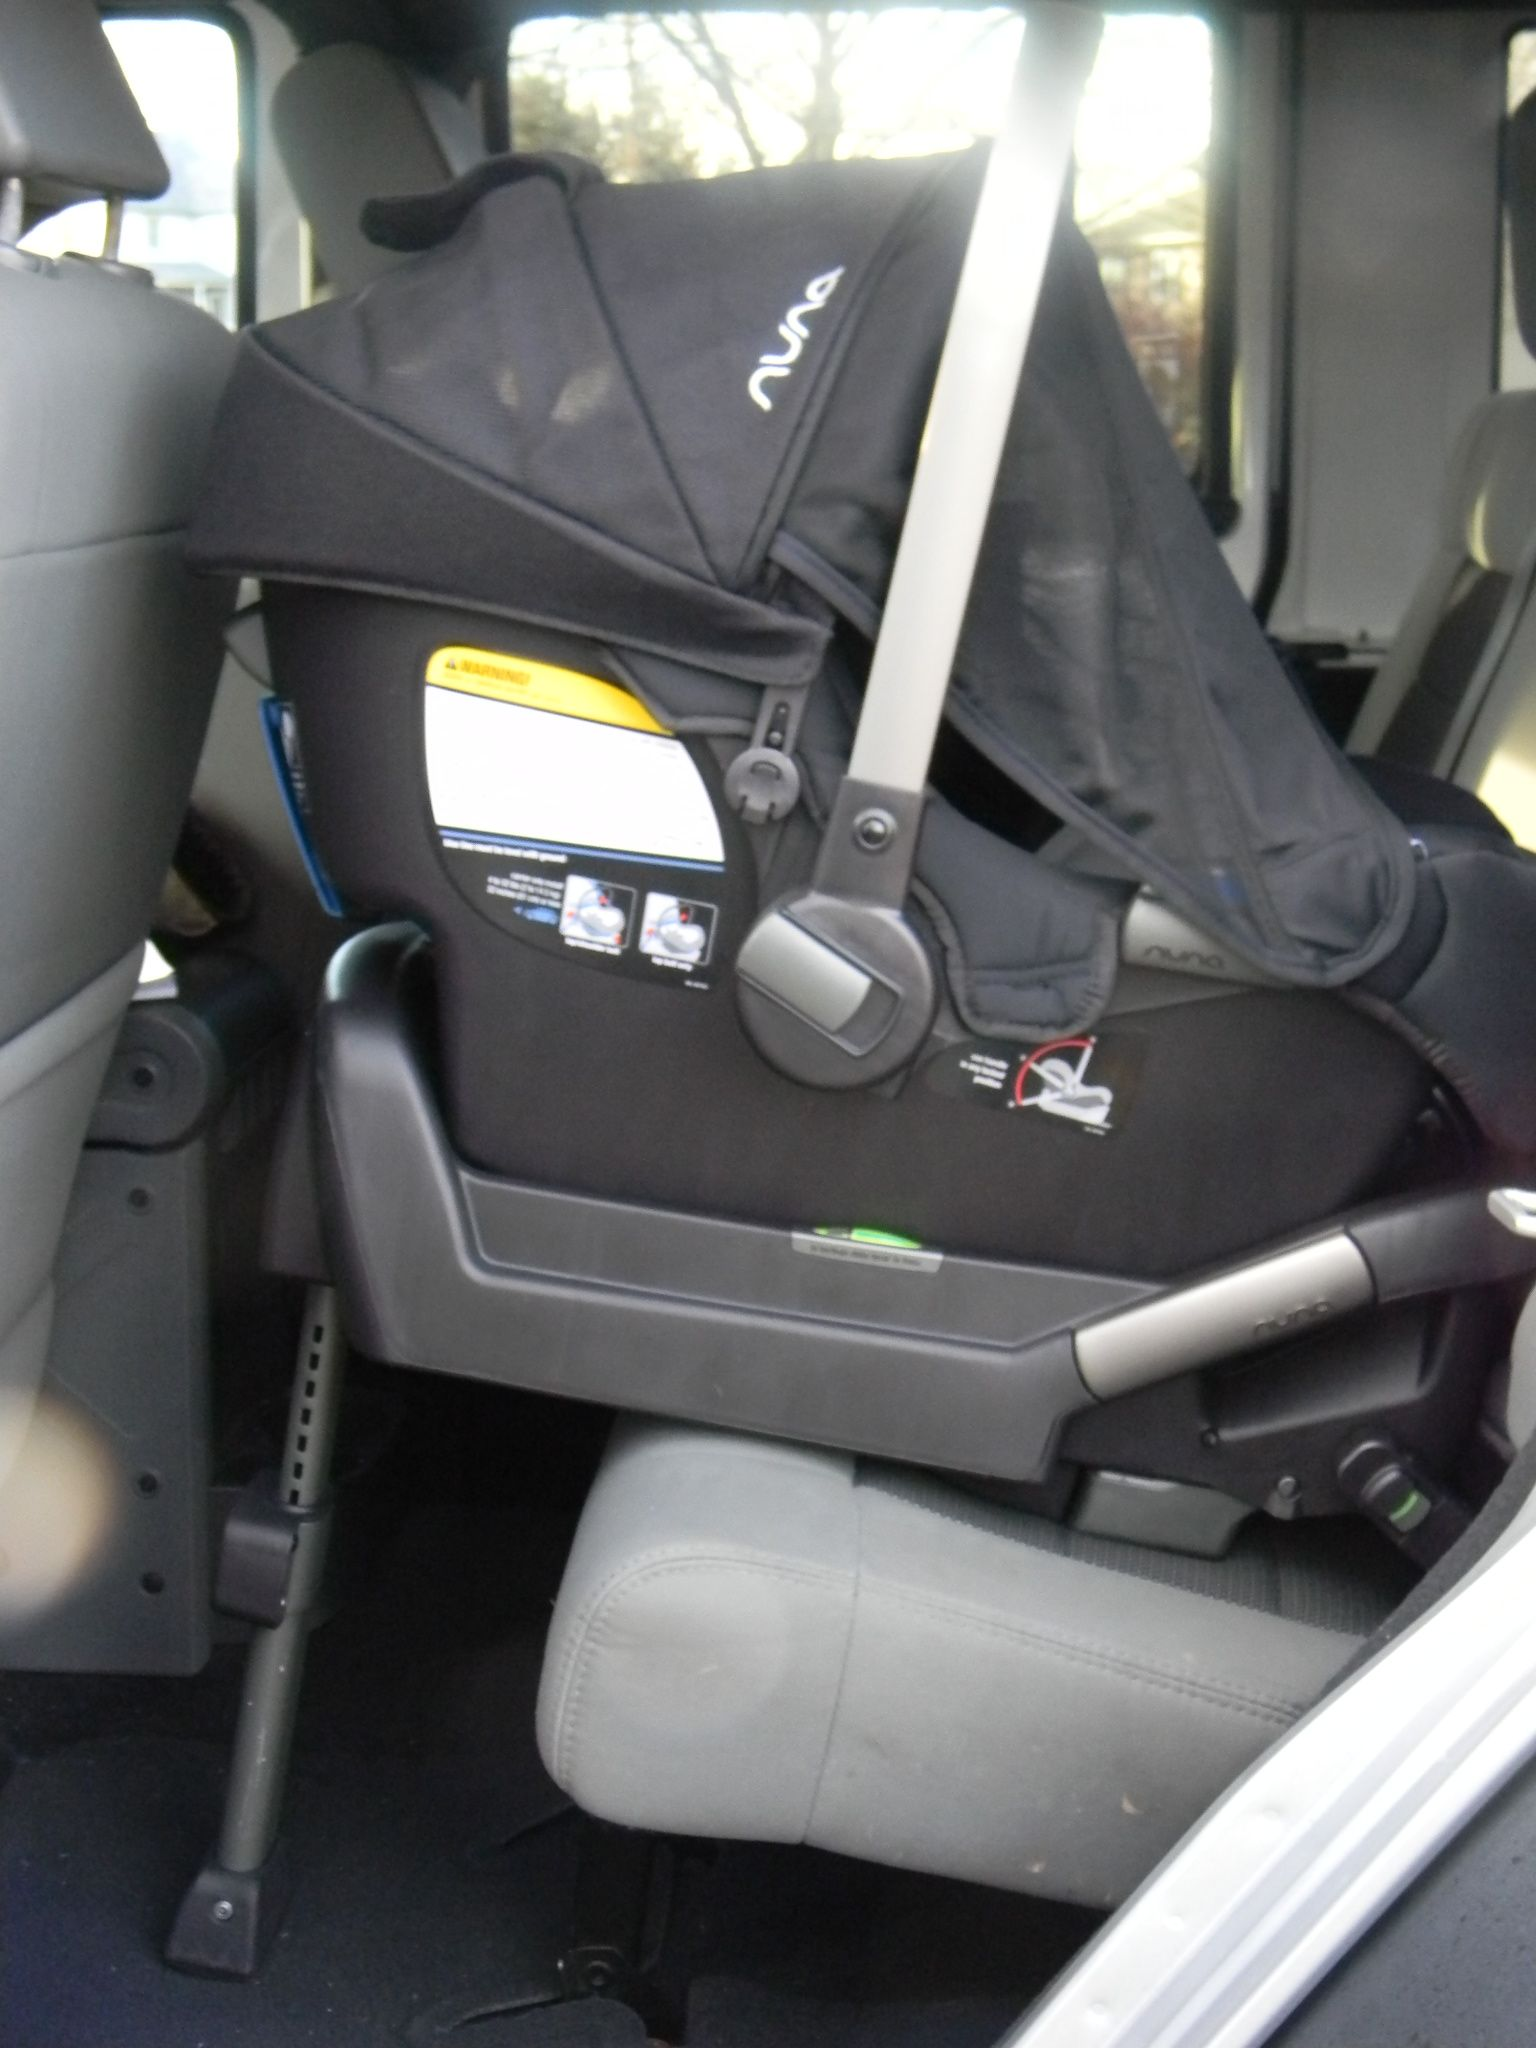 The Most Trusted Source For Car Seat Reviews Ratings Deals News Car Seats Baby Car Seats Car Seat Reviews